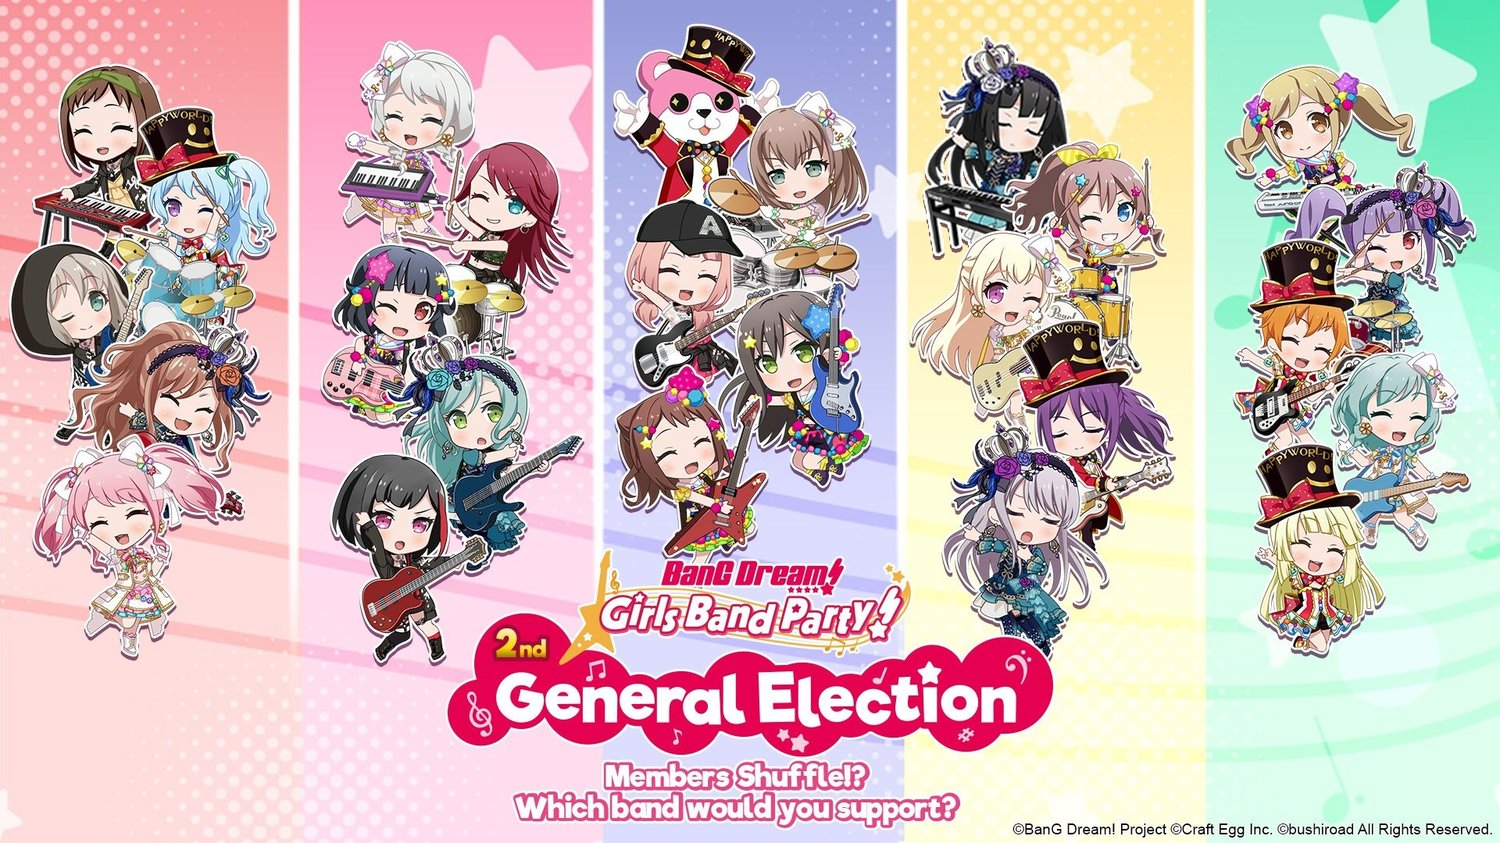 BanG Dream! Girls Band Party! 2nd General Election